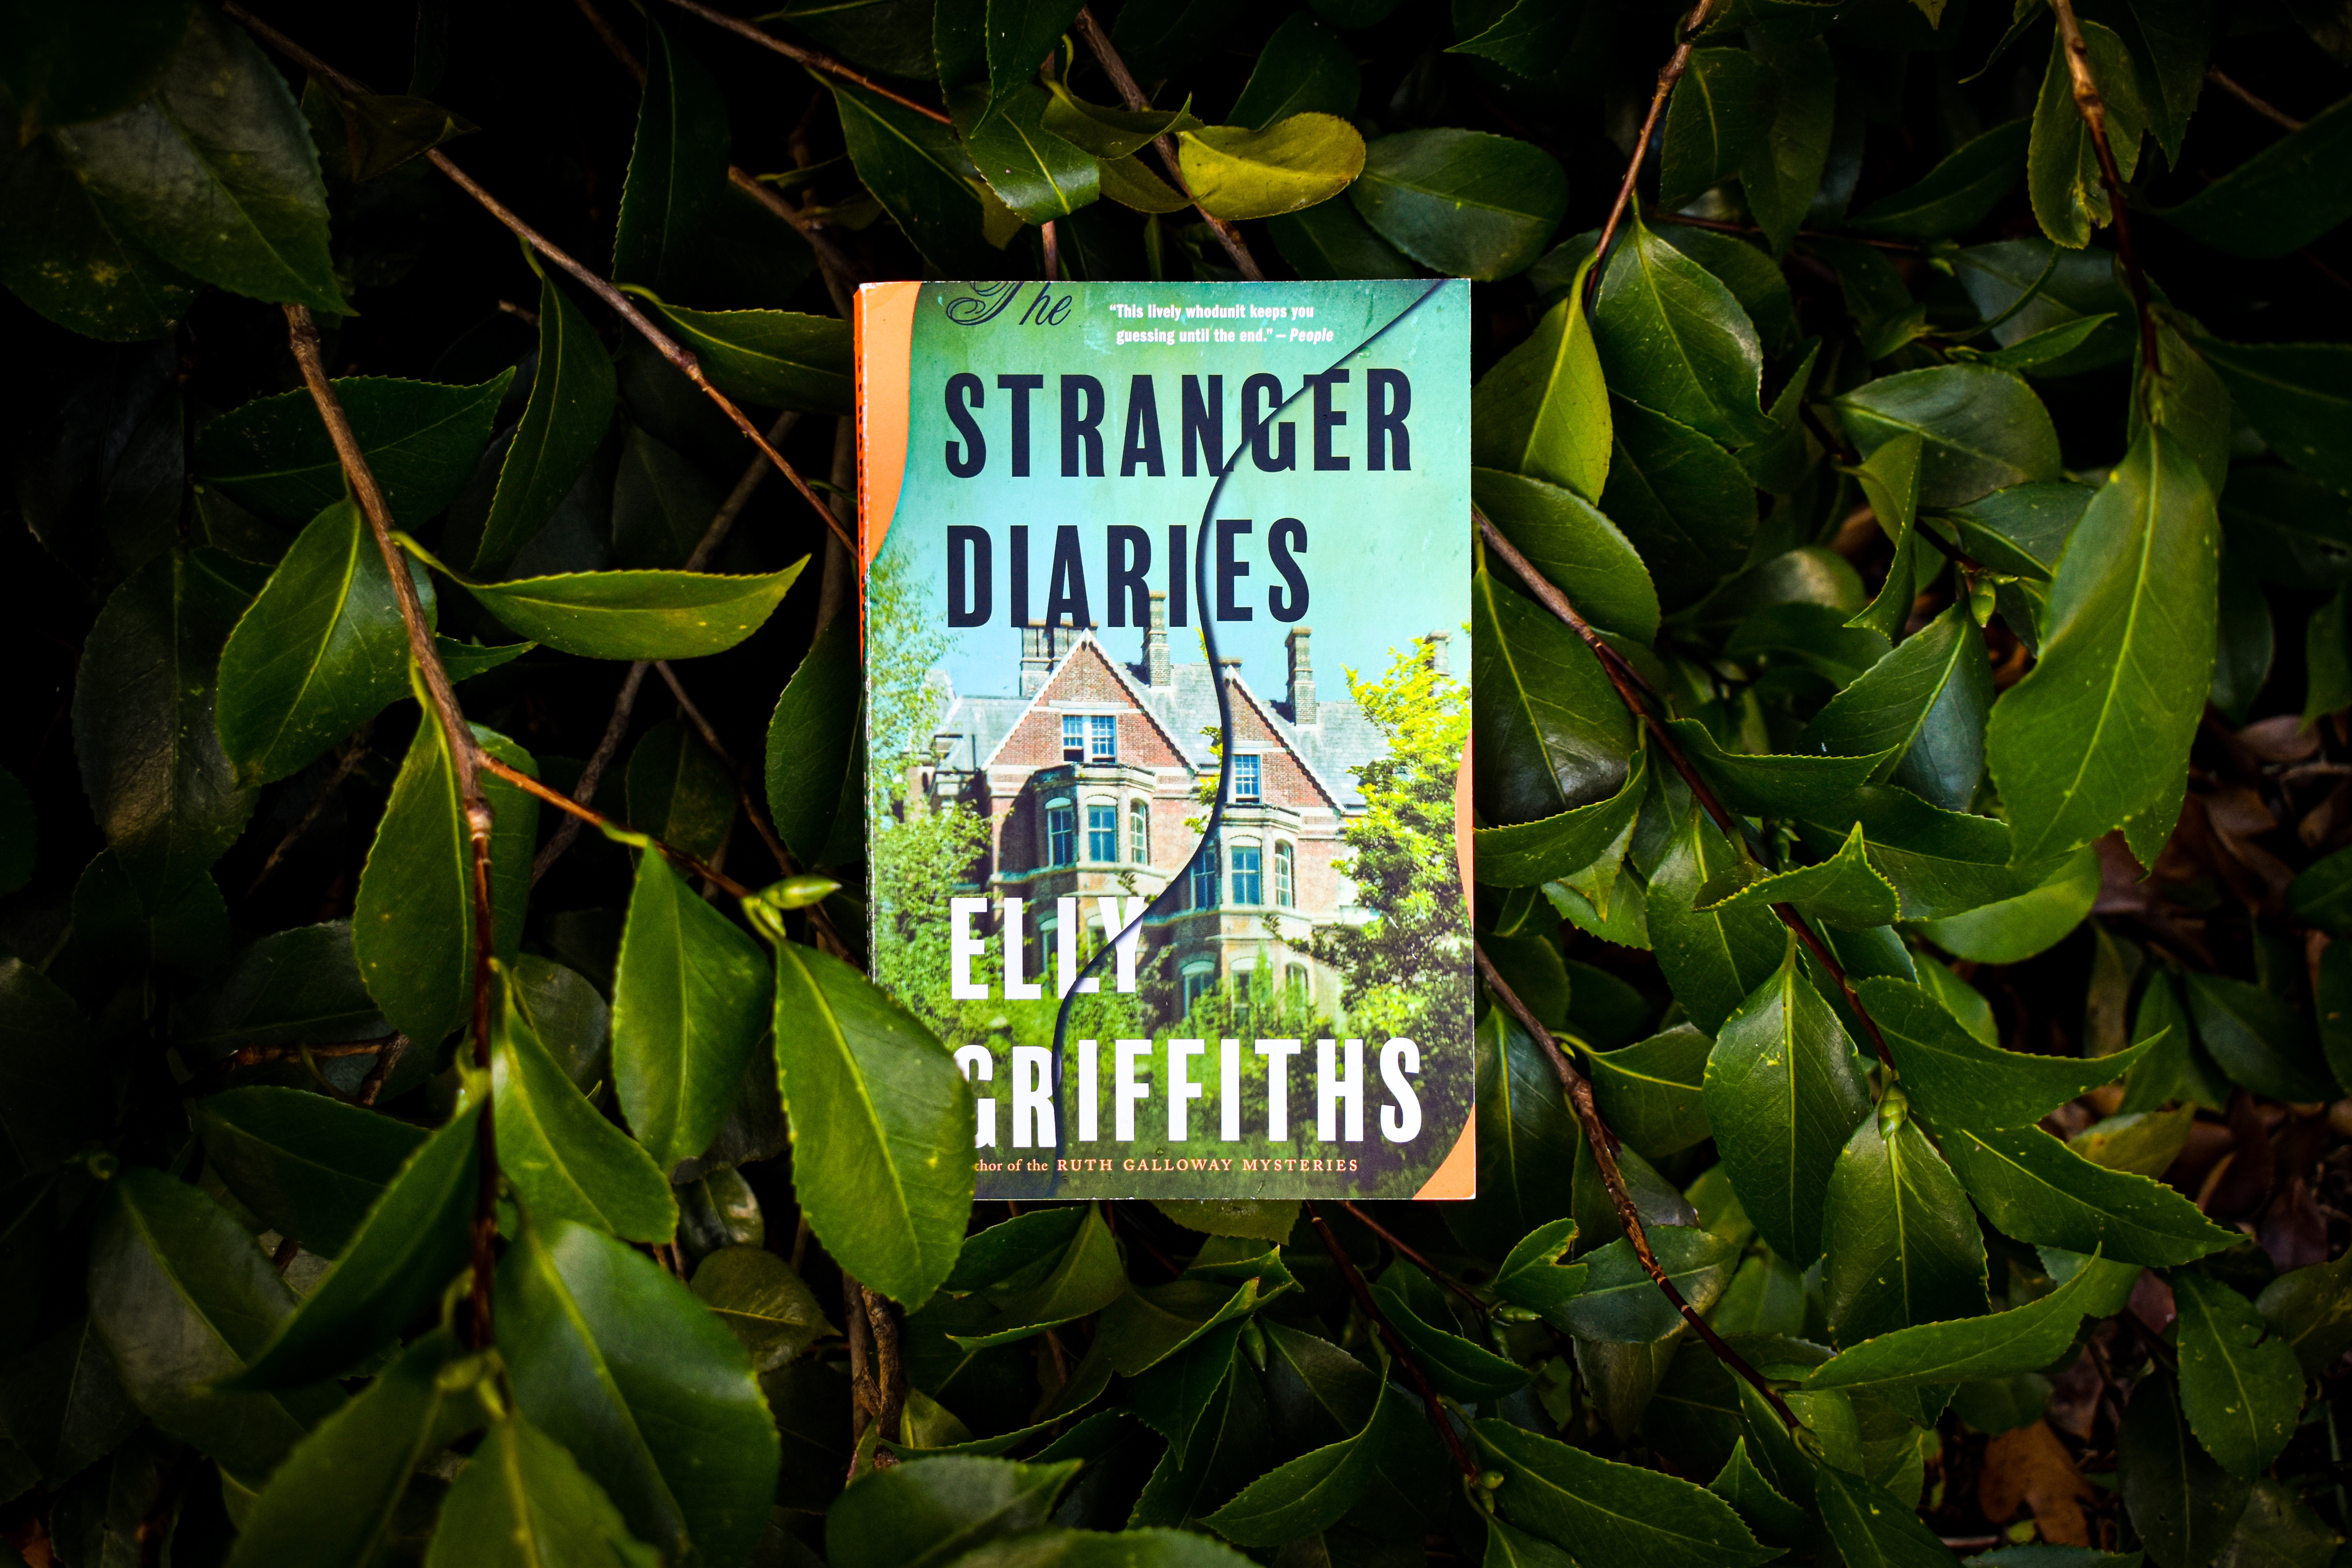 Button to Purchase The Stranger Diaries.